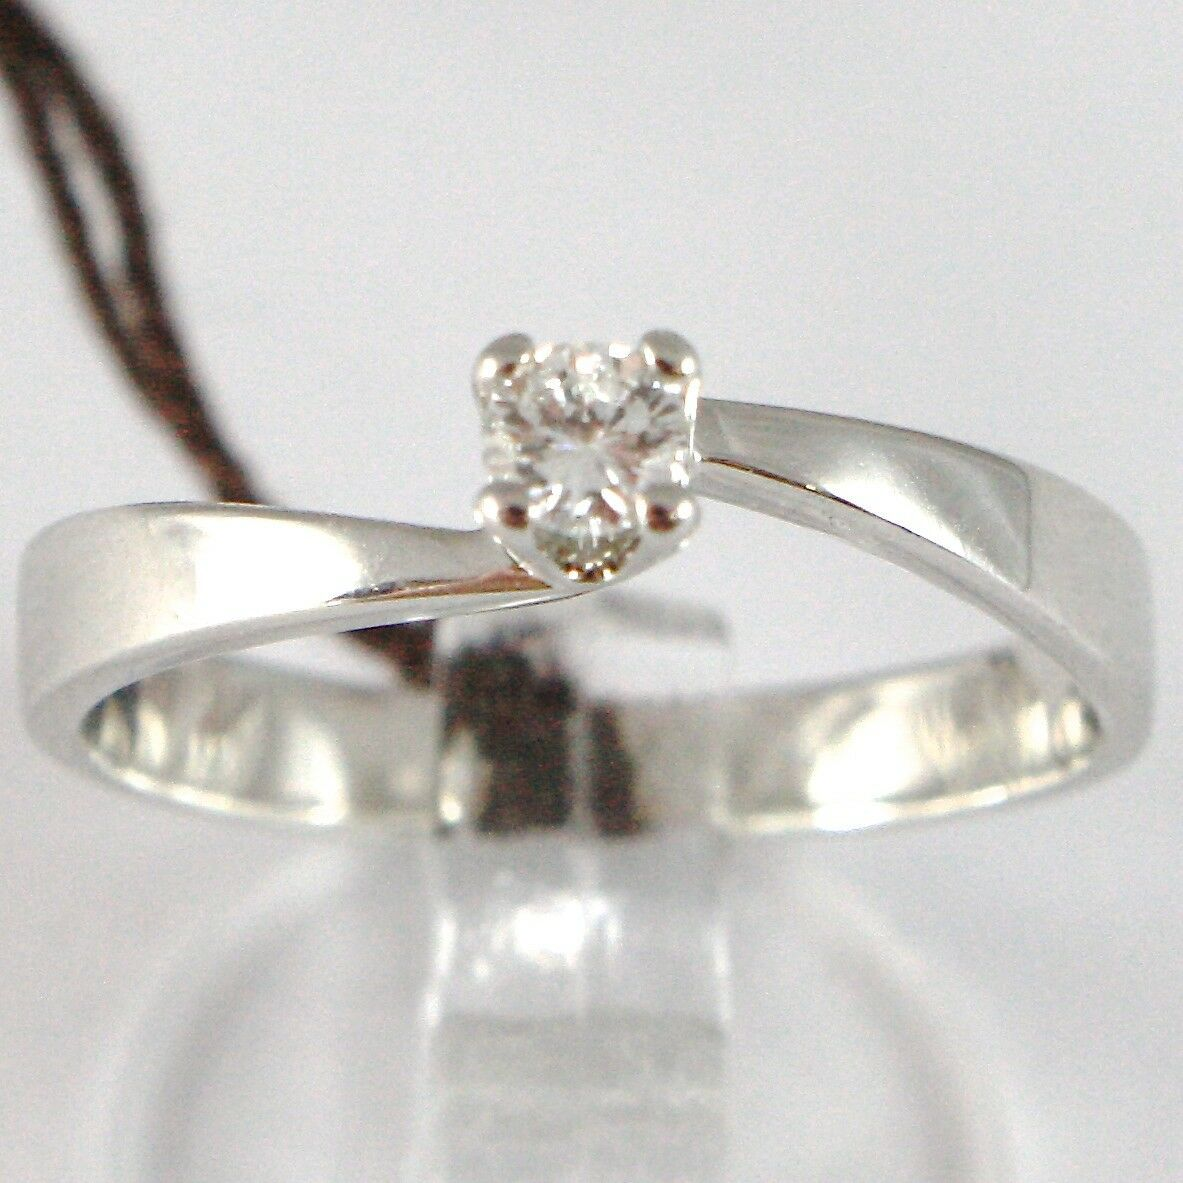 WHITE GOLD RING 750 18K, SOLITAIRE, SQUARED CRISS CROSSED, DIAMOND, CT 0.10